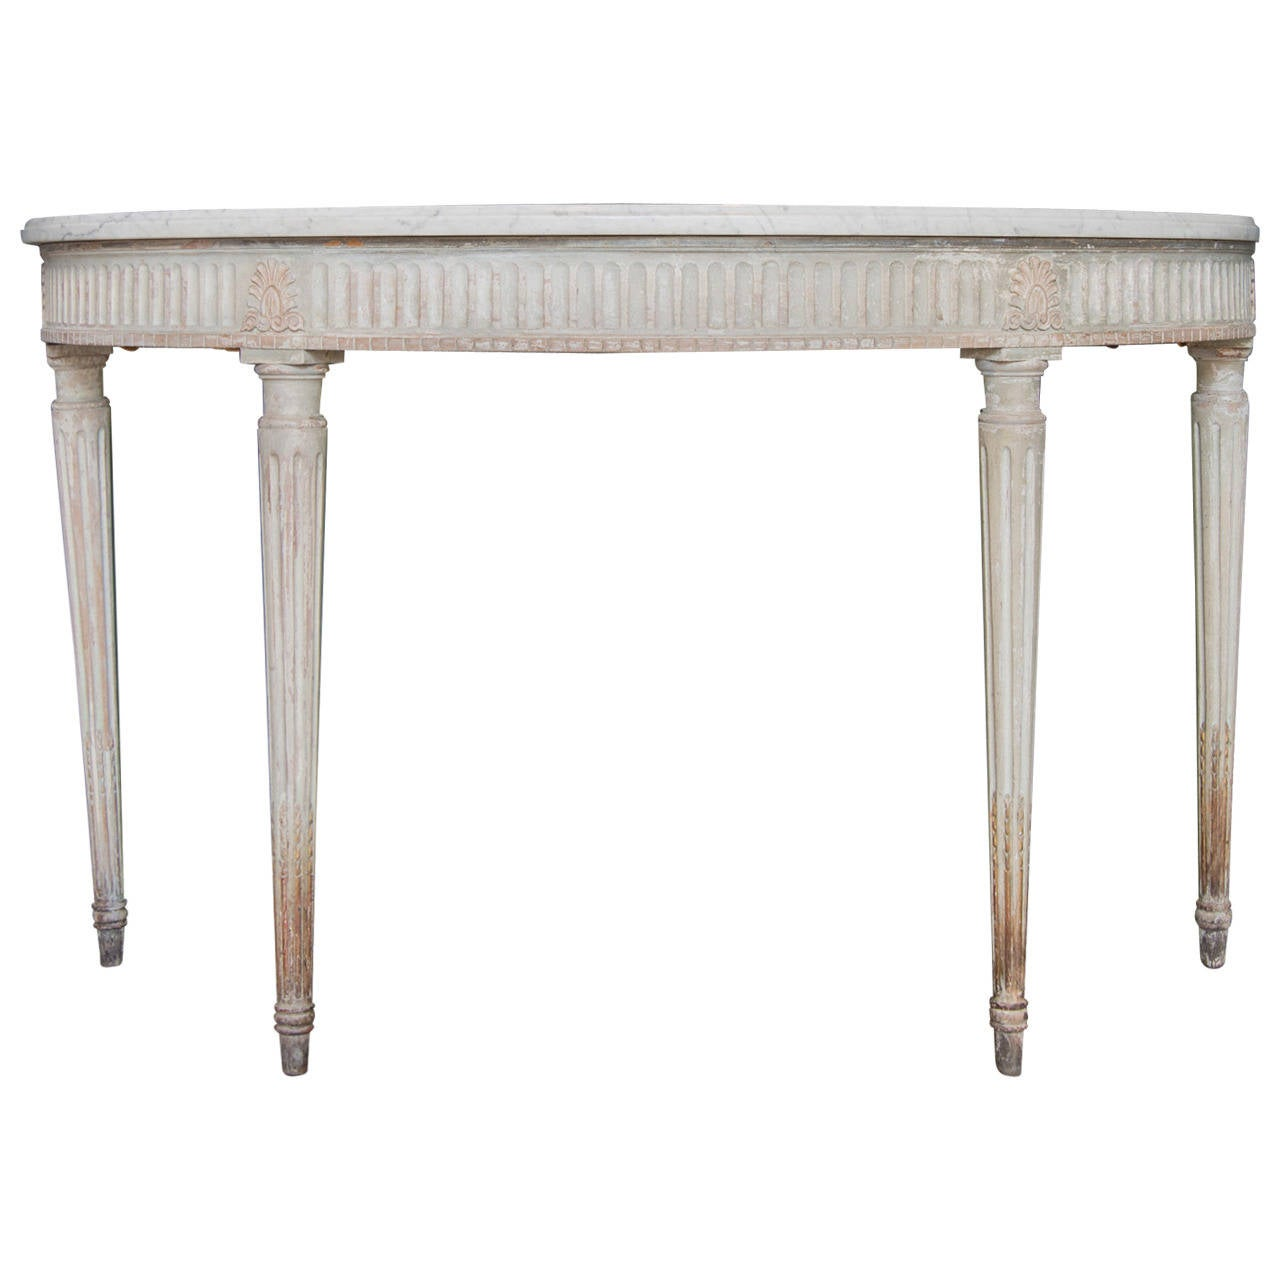 Louis xvi style demilune marble top console table france circa 1890 at 1stdibs White demilune console table